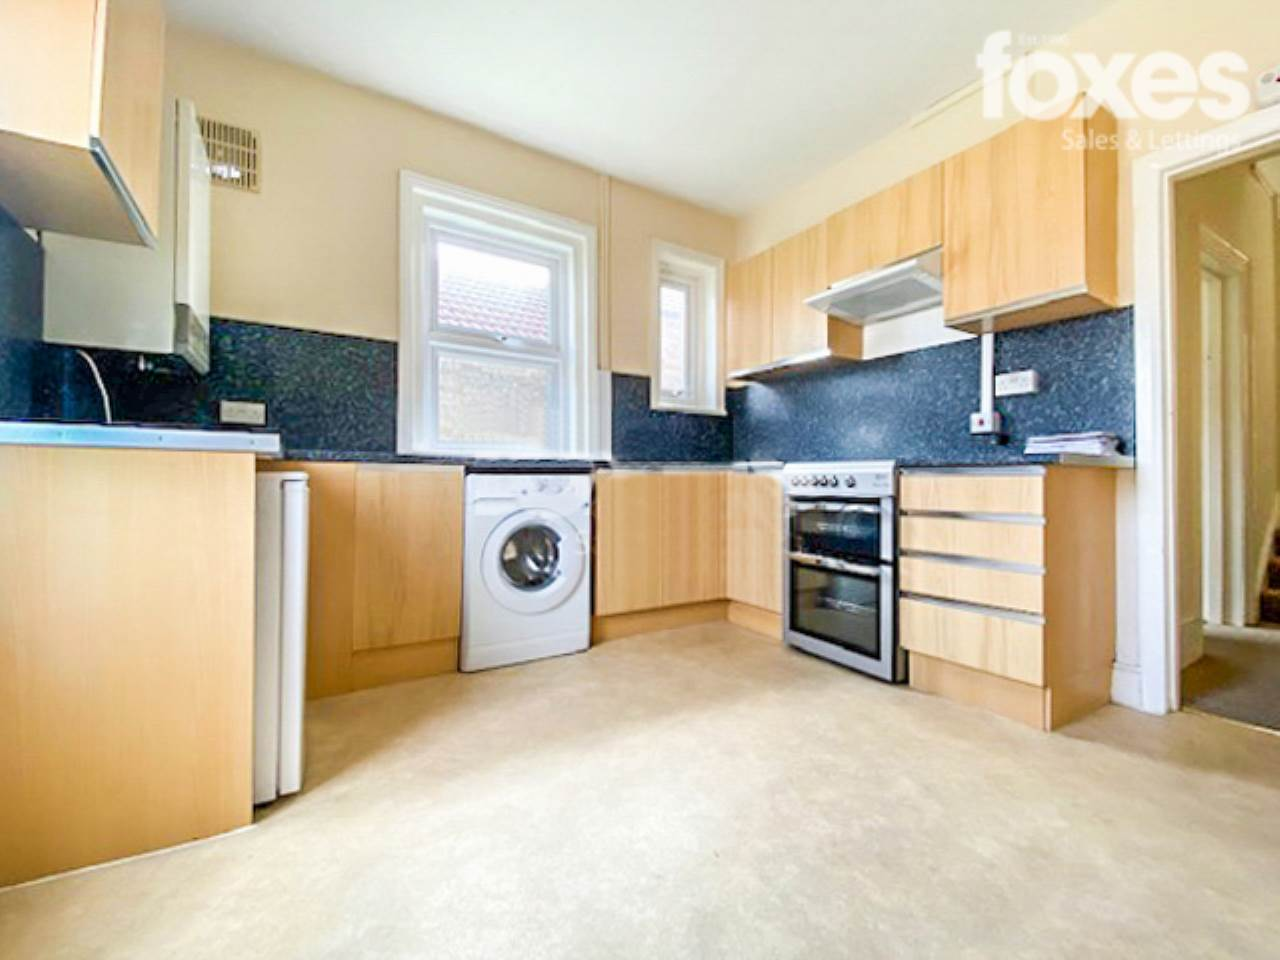 2 bed flat to rent in Poole Road, Branksome  - Property Image 1